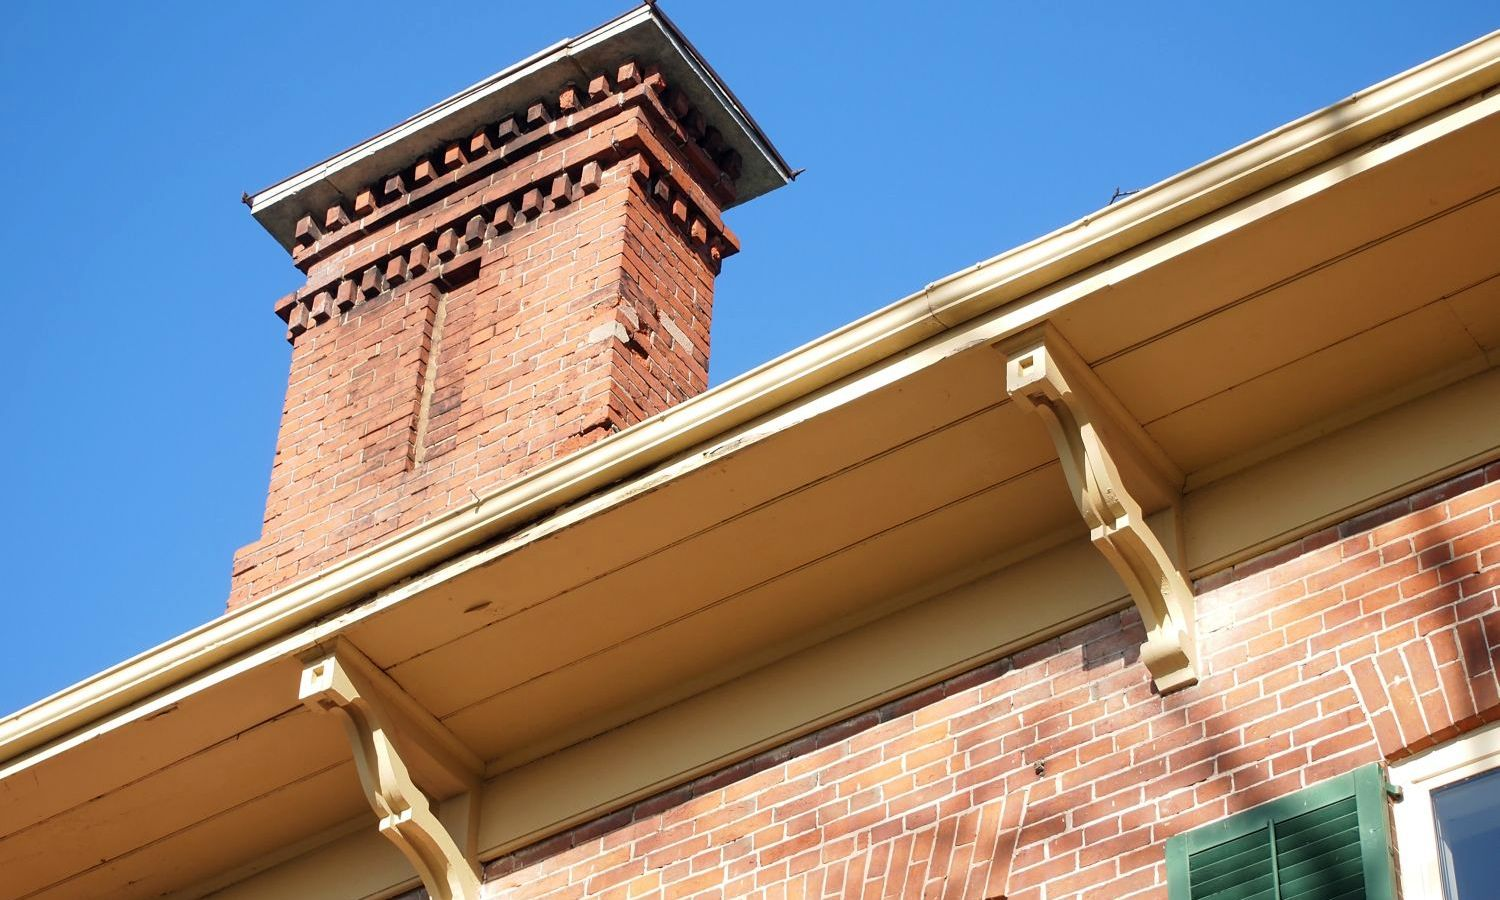 Detail of roof eave with brackets and brick chimney